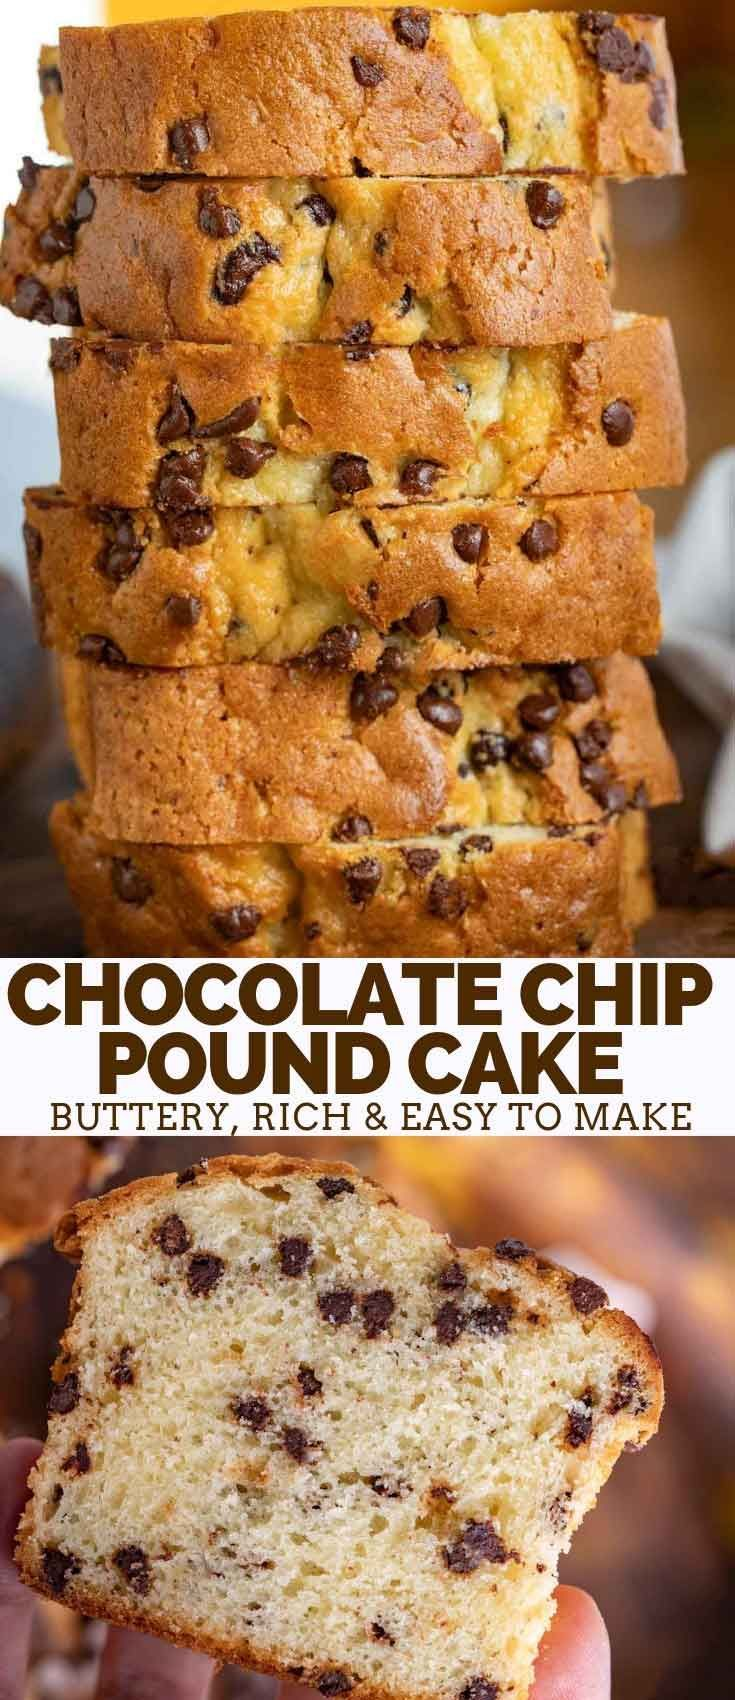 Chocolate Chip Pound Cake is the PERFECT combo of buttery, rich and soft pound cake with sweet chocolate chips baked in just 60 minutes! cake poundcake bundtcake baking chocolate chocolatechips  is part of Chocolate chip pound cake -